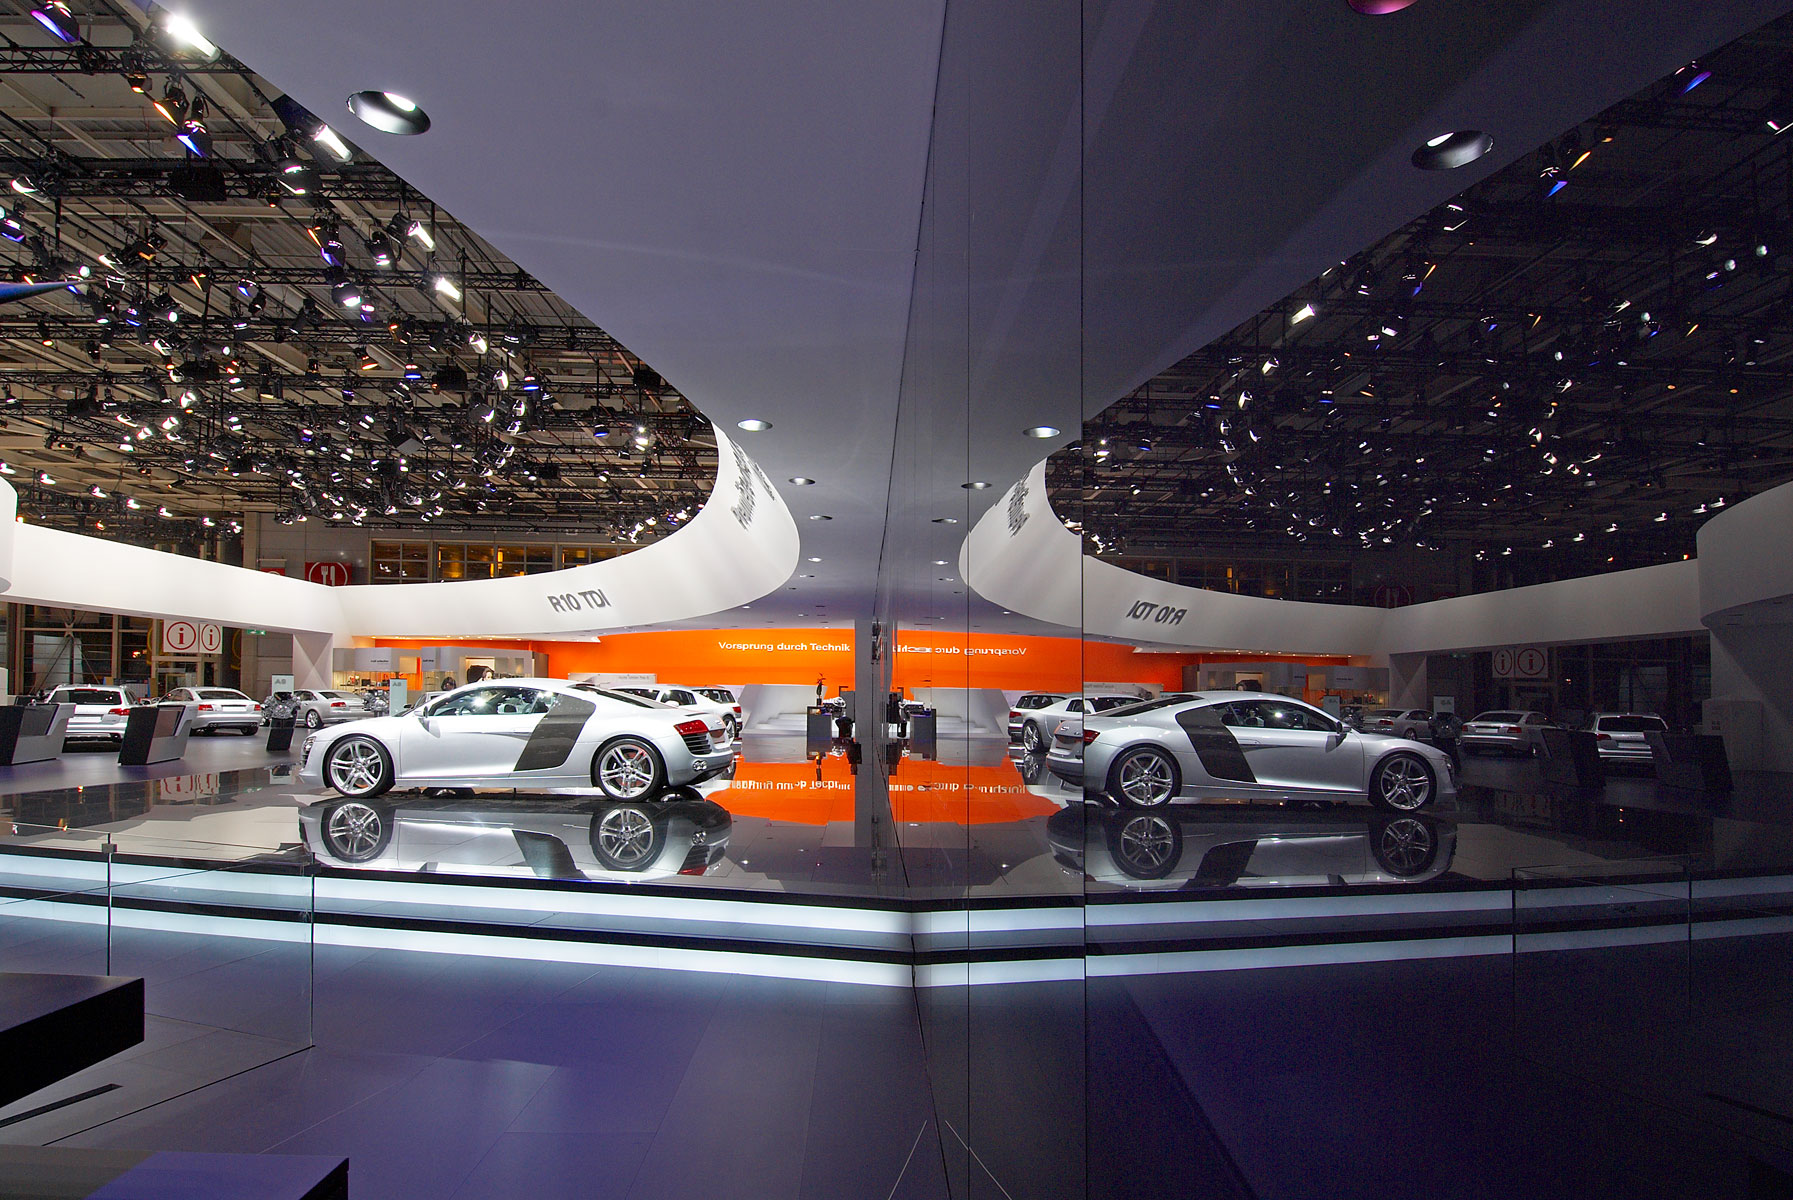 Messefotografie – AUDI Paris Expo